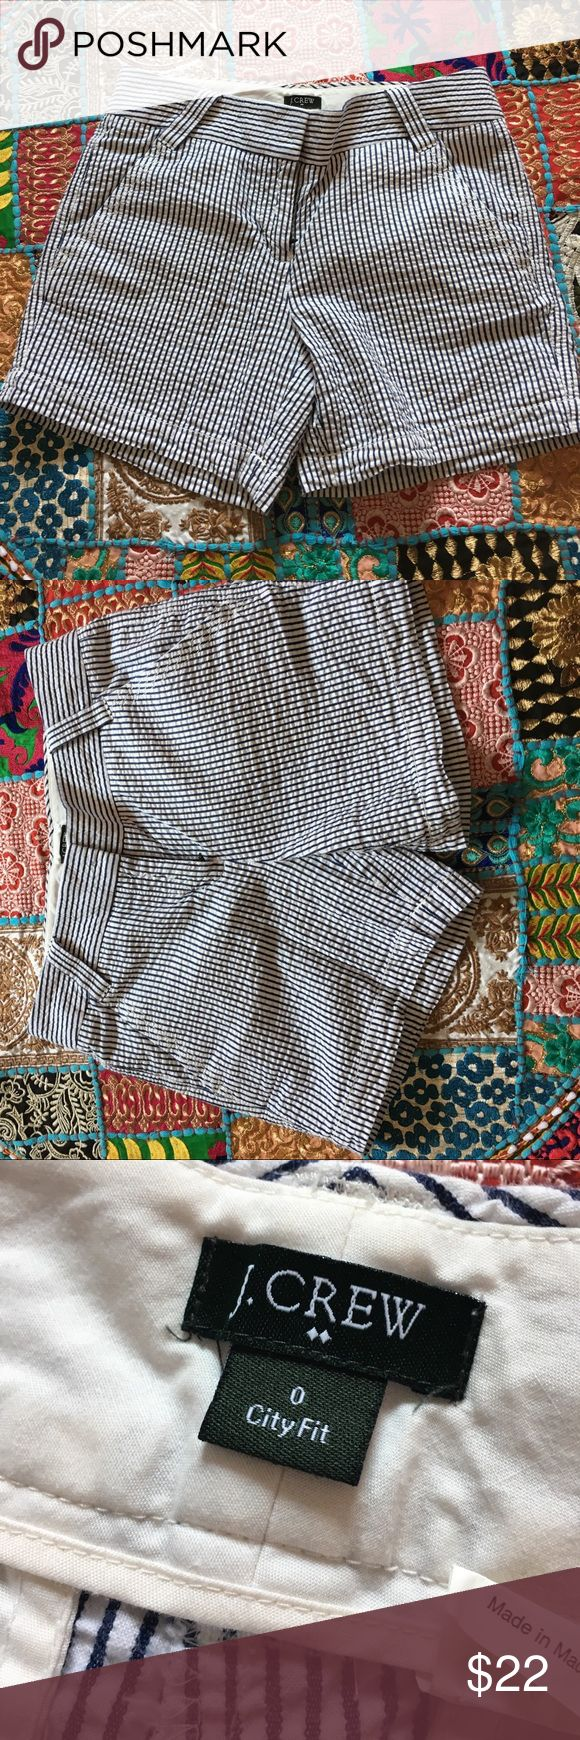 J. Crew Seersucker Shorts Blue and White Seersucker shirts from J.Crew. Excellent condition, no flaws. A summer must have for dressing up or down! 💙 J. Crew Shorts